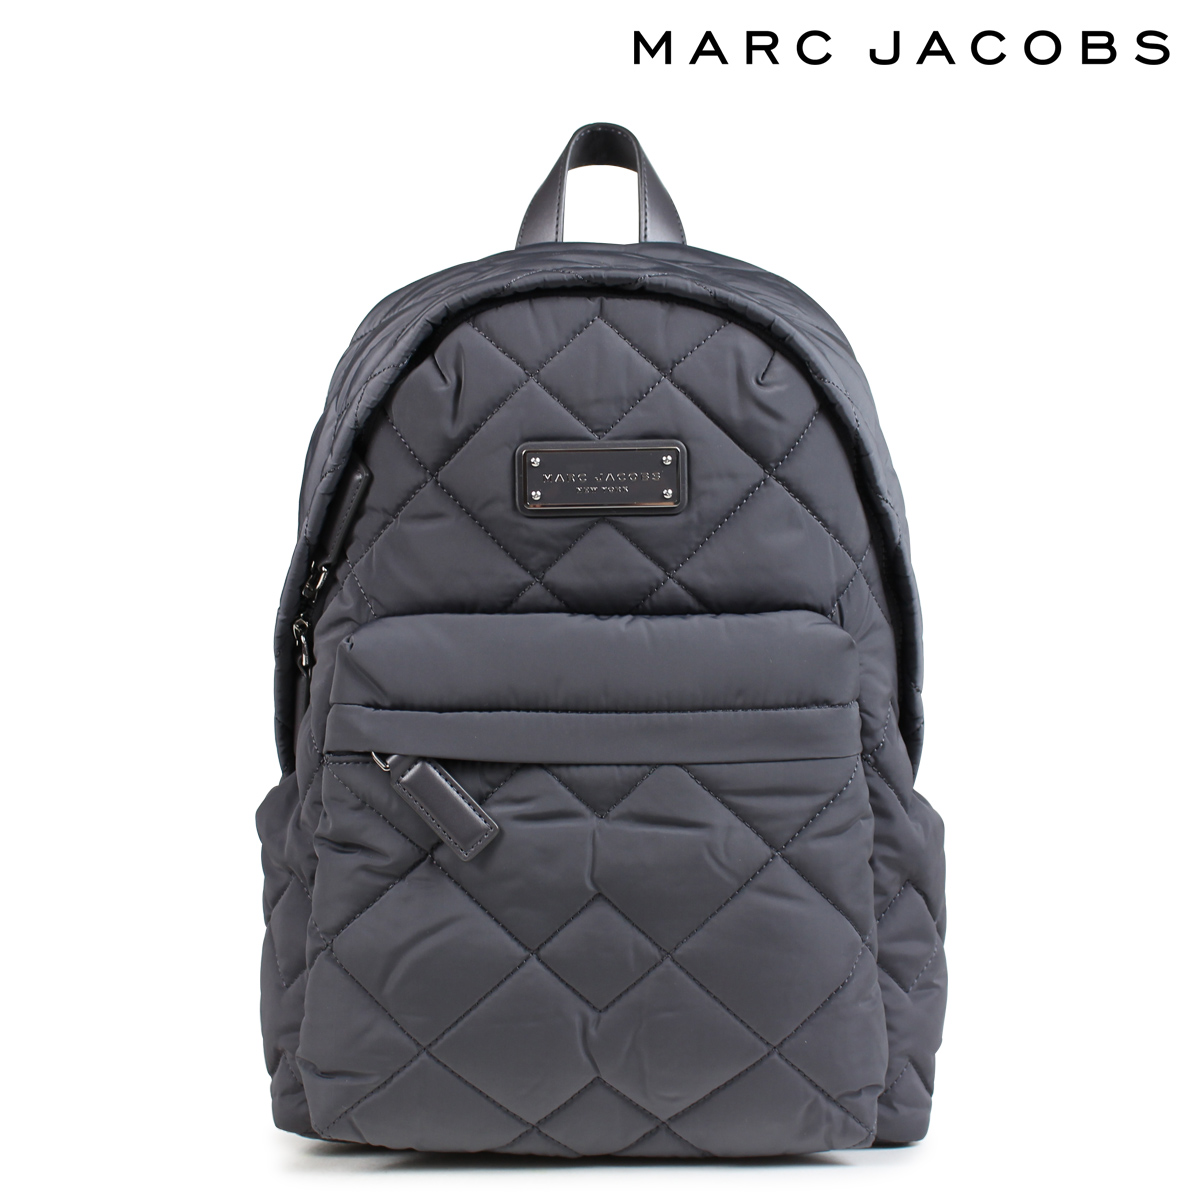 e6bcdd9139 Sugar Online Shop: MARC JACOBS mark Jacobs bag rucksack bag pack ...